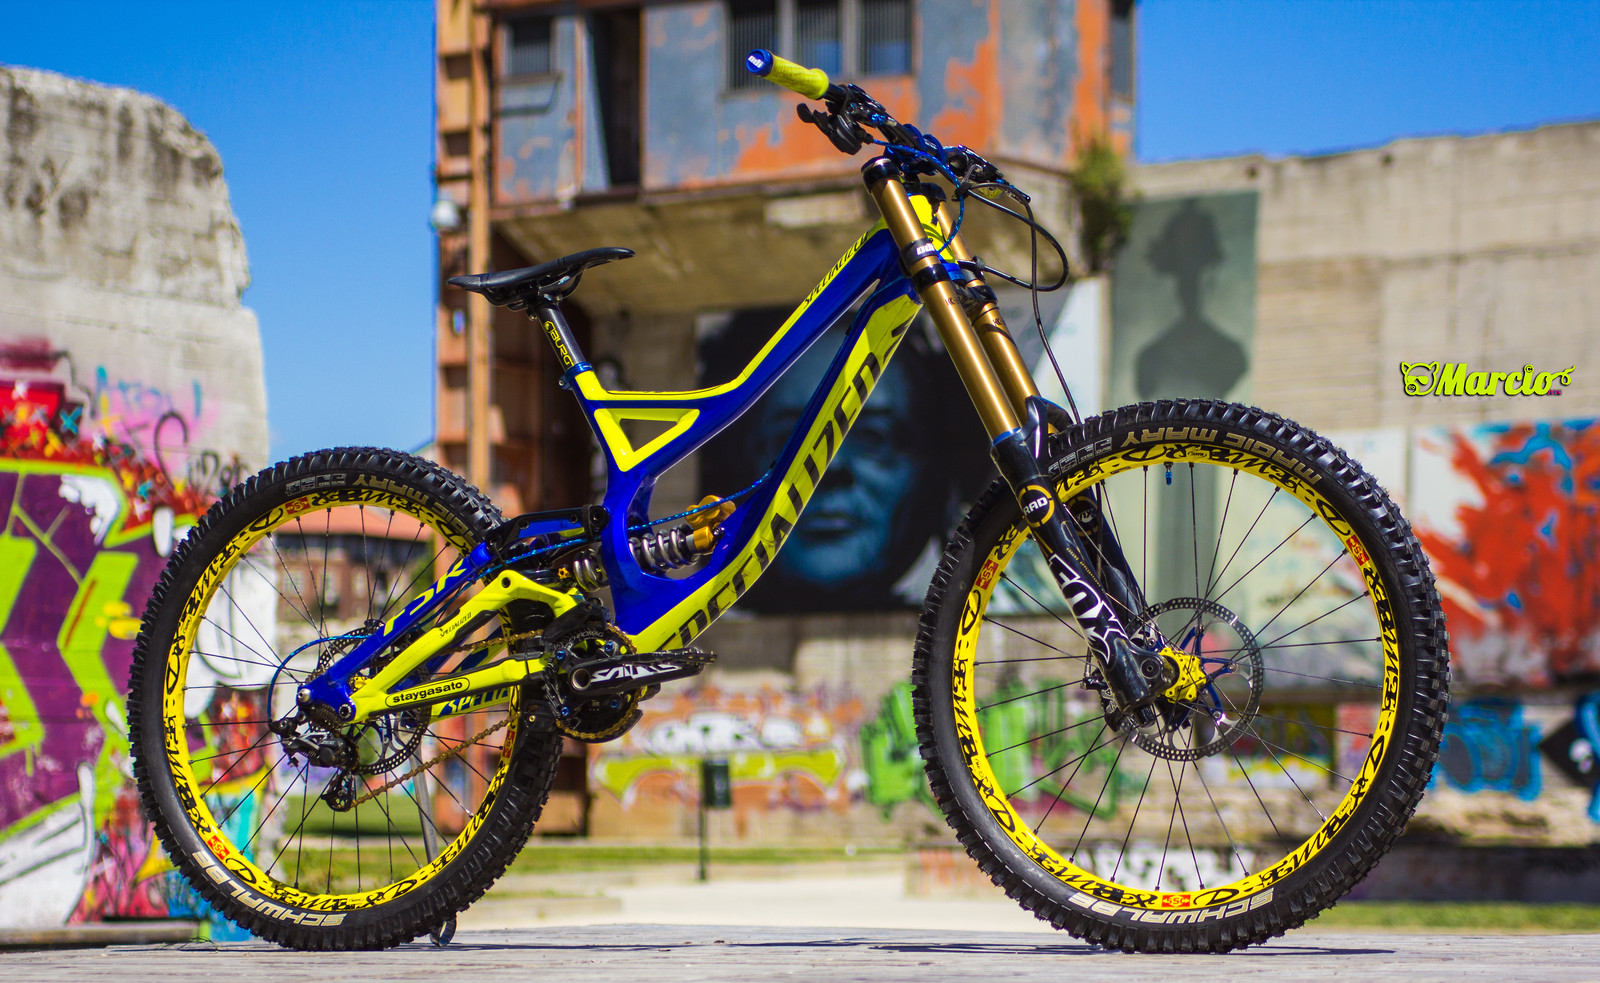 Specialized Demo 8 2k14 Indigo Fluoryellow Marci0 S Bike